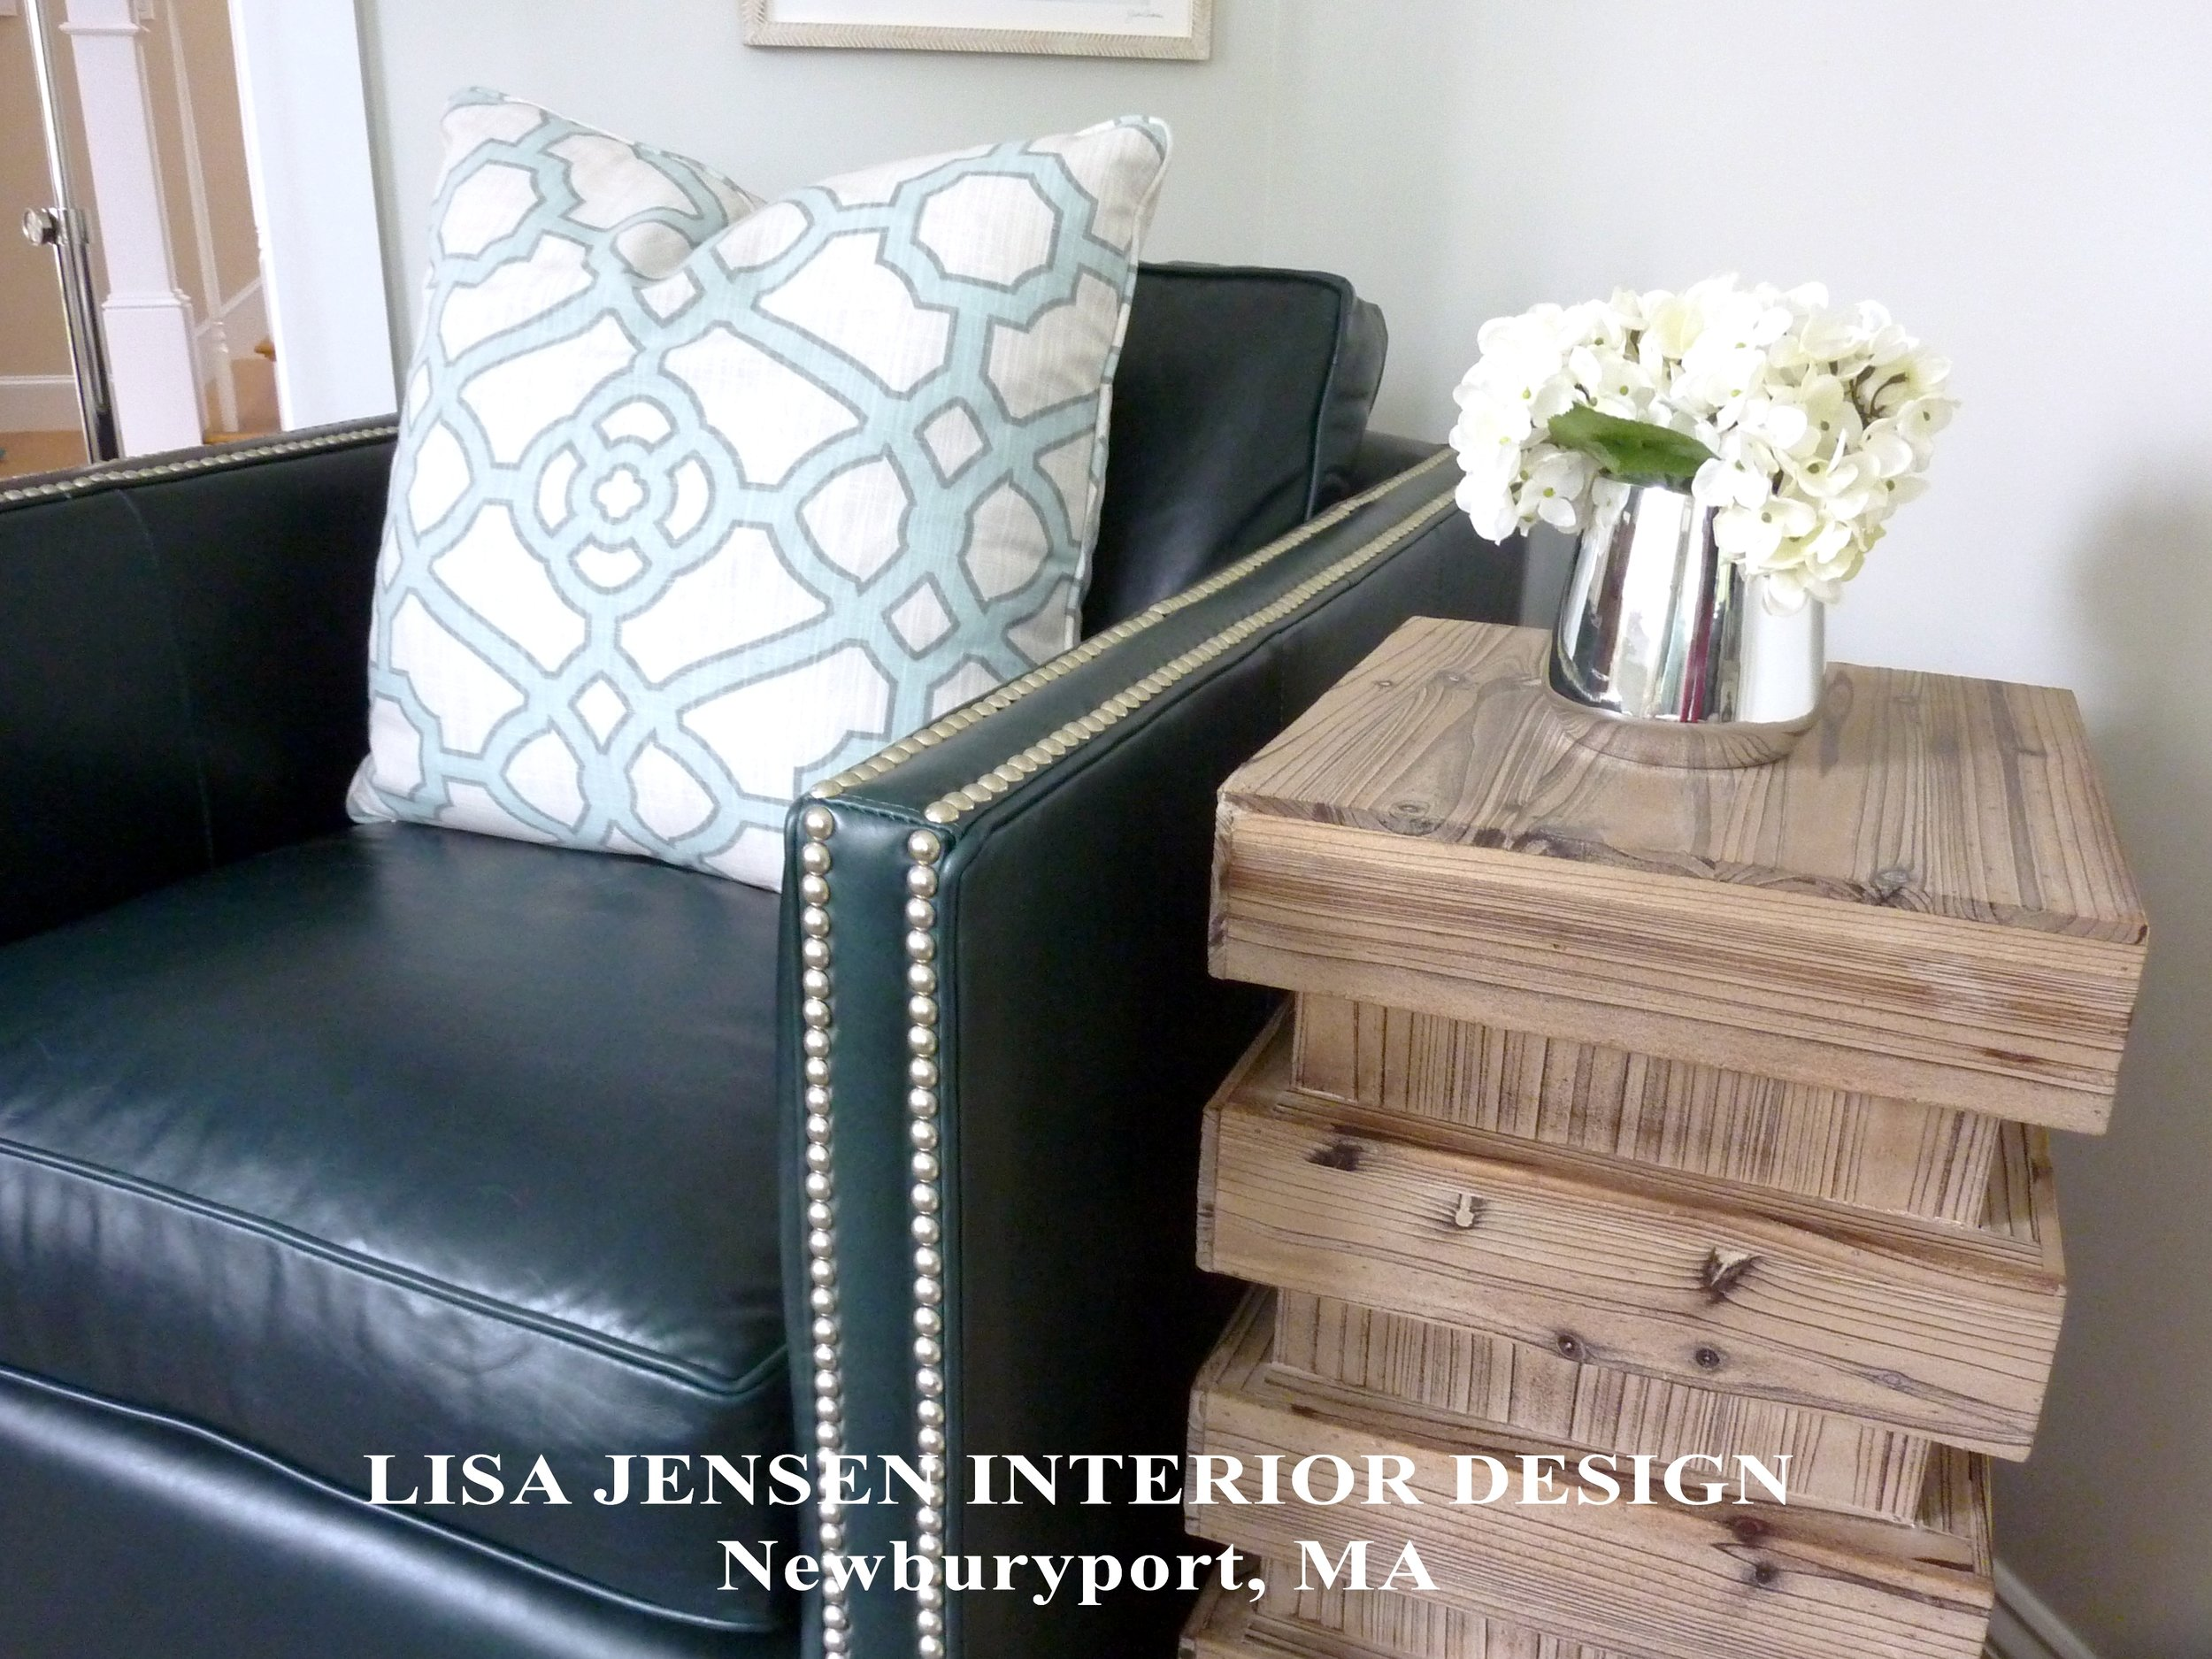 A closeup of furnishings selected by Lisa Jensen Interior Design showcasing a balance between textures, materials, colors, shapes, masculinity and femininity.